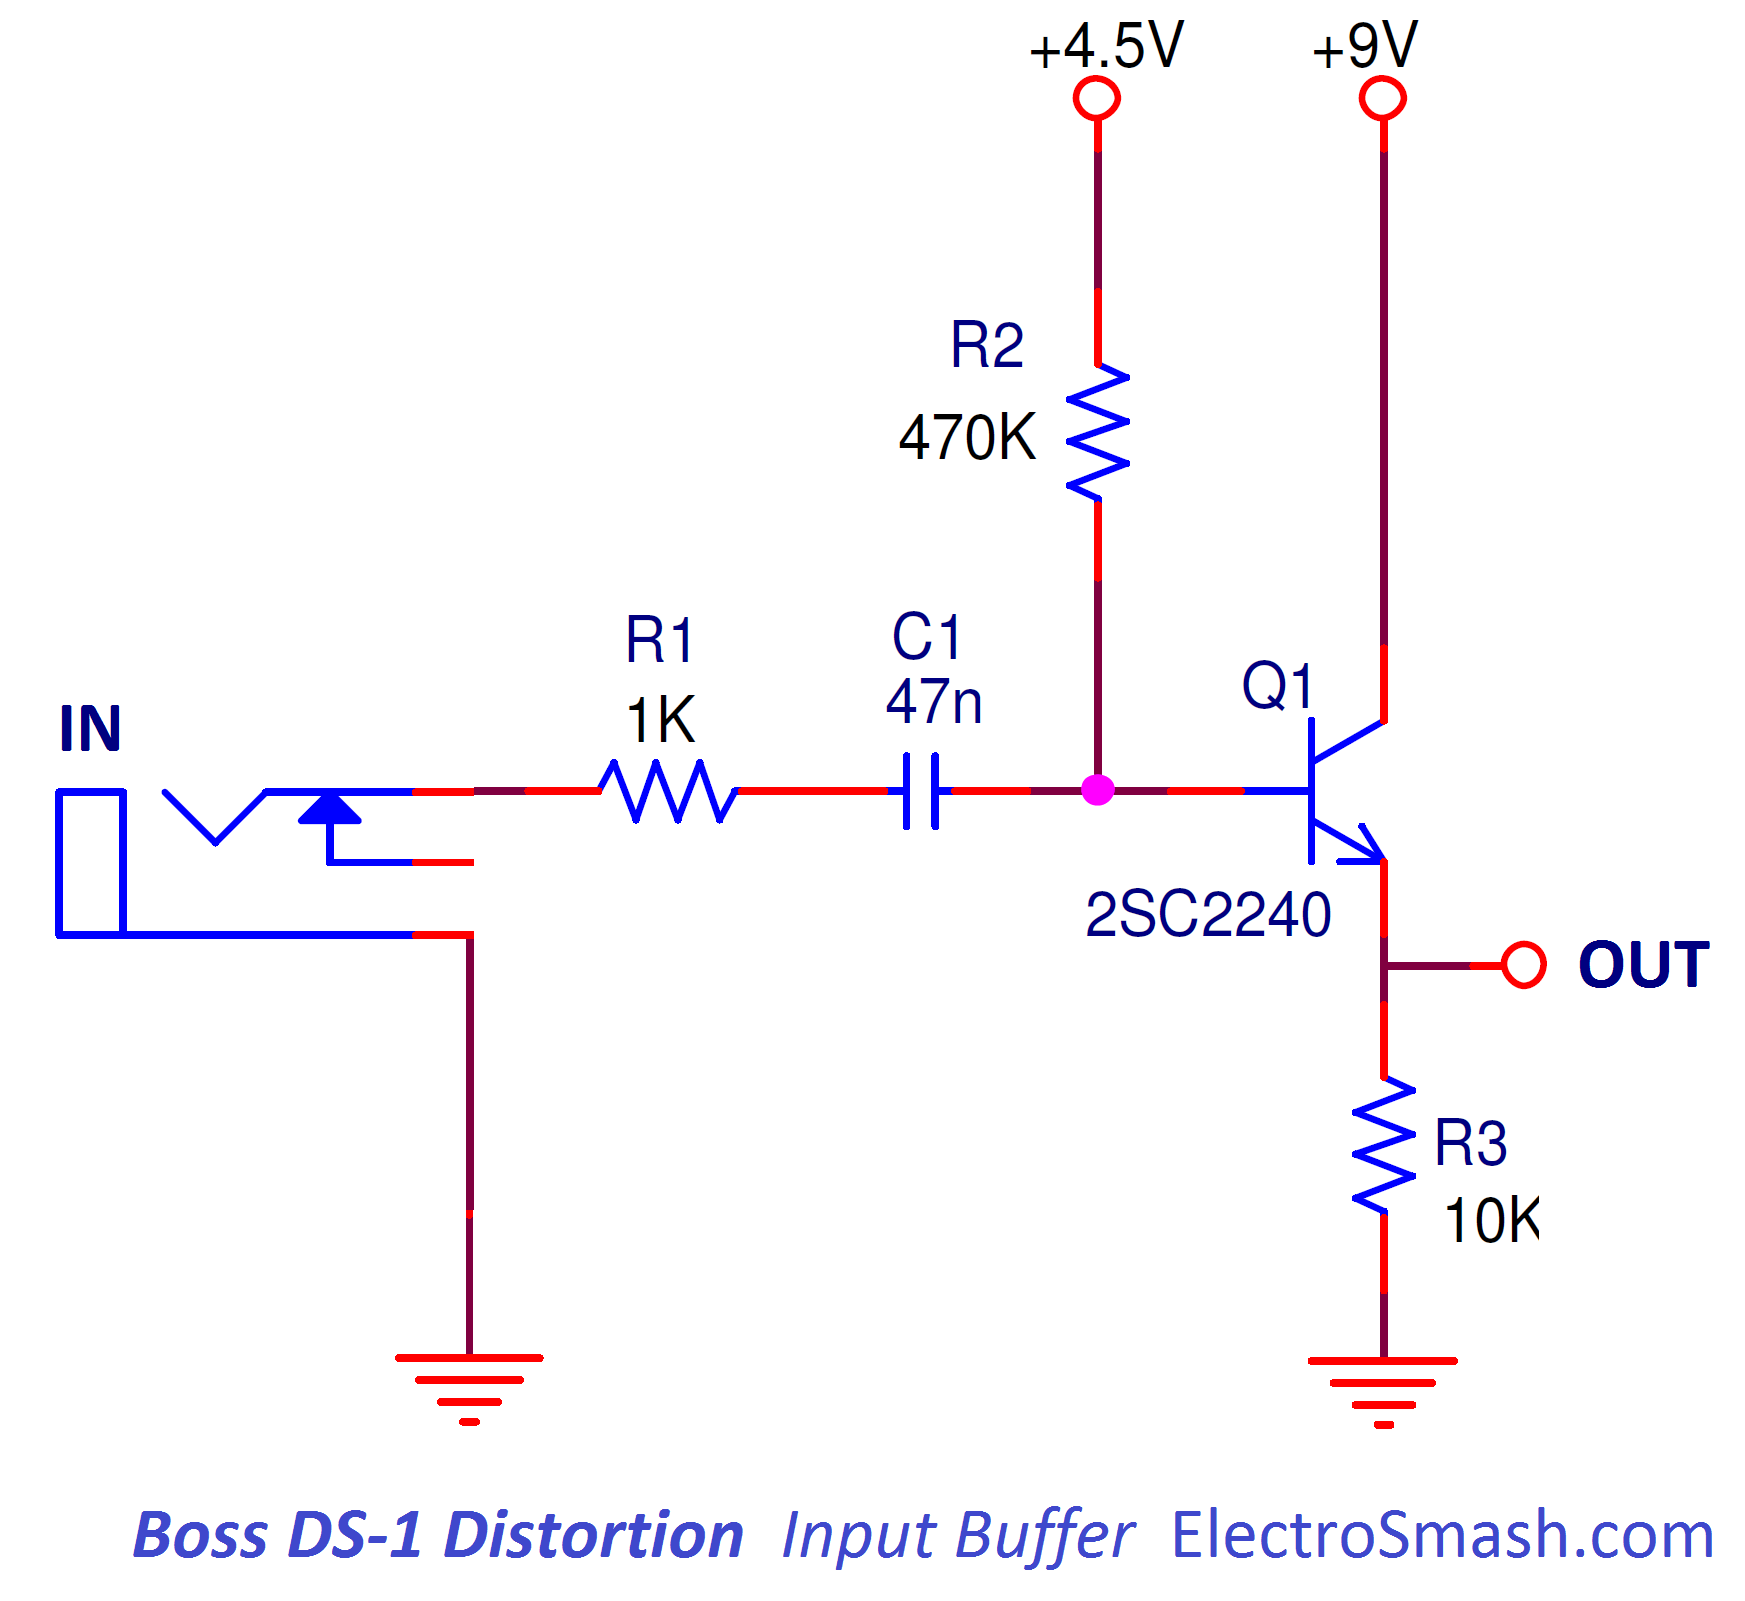 Electrosmash Boss Ds1 Distortion Analysis Op Amp Is The Buffer In This Power Supply Circuit Required Input